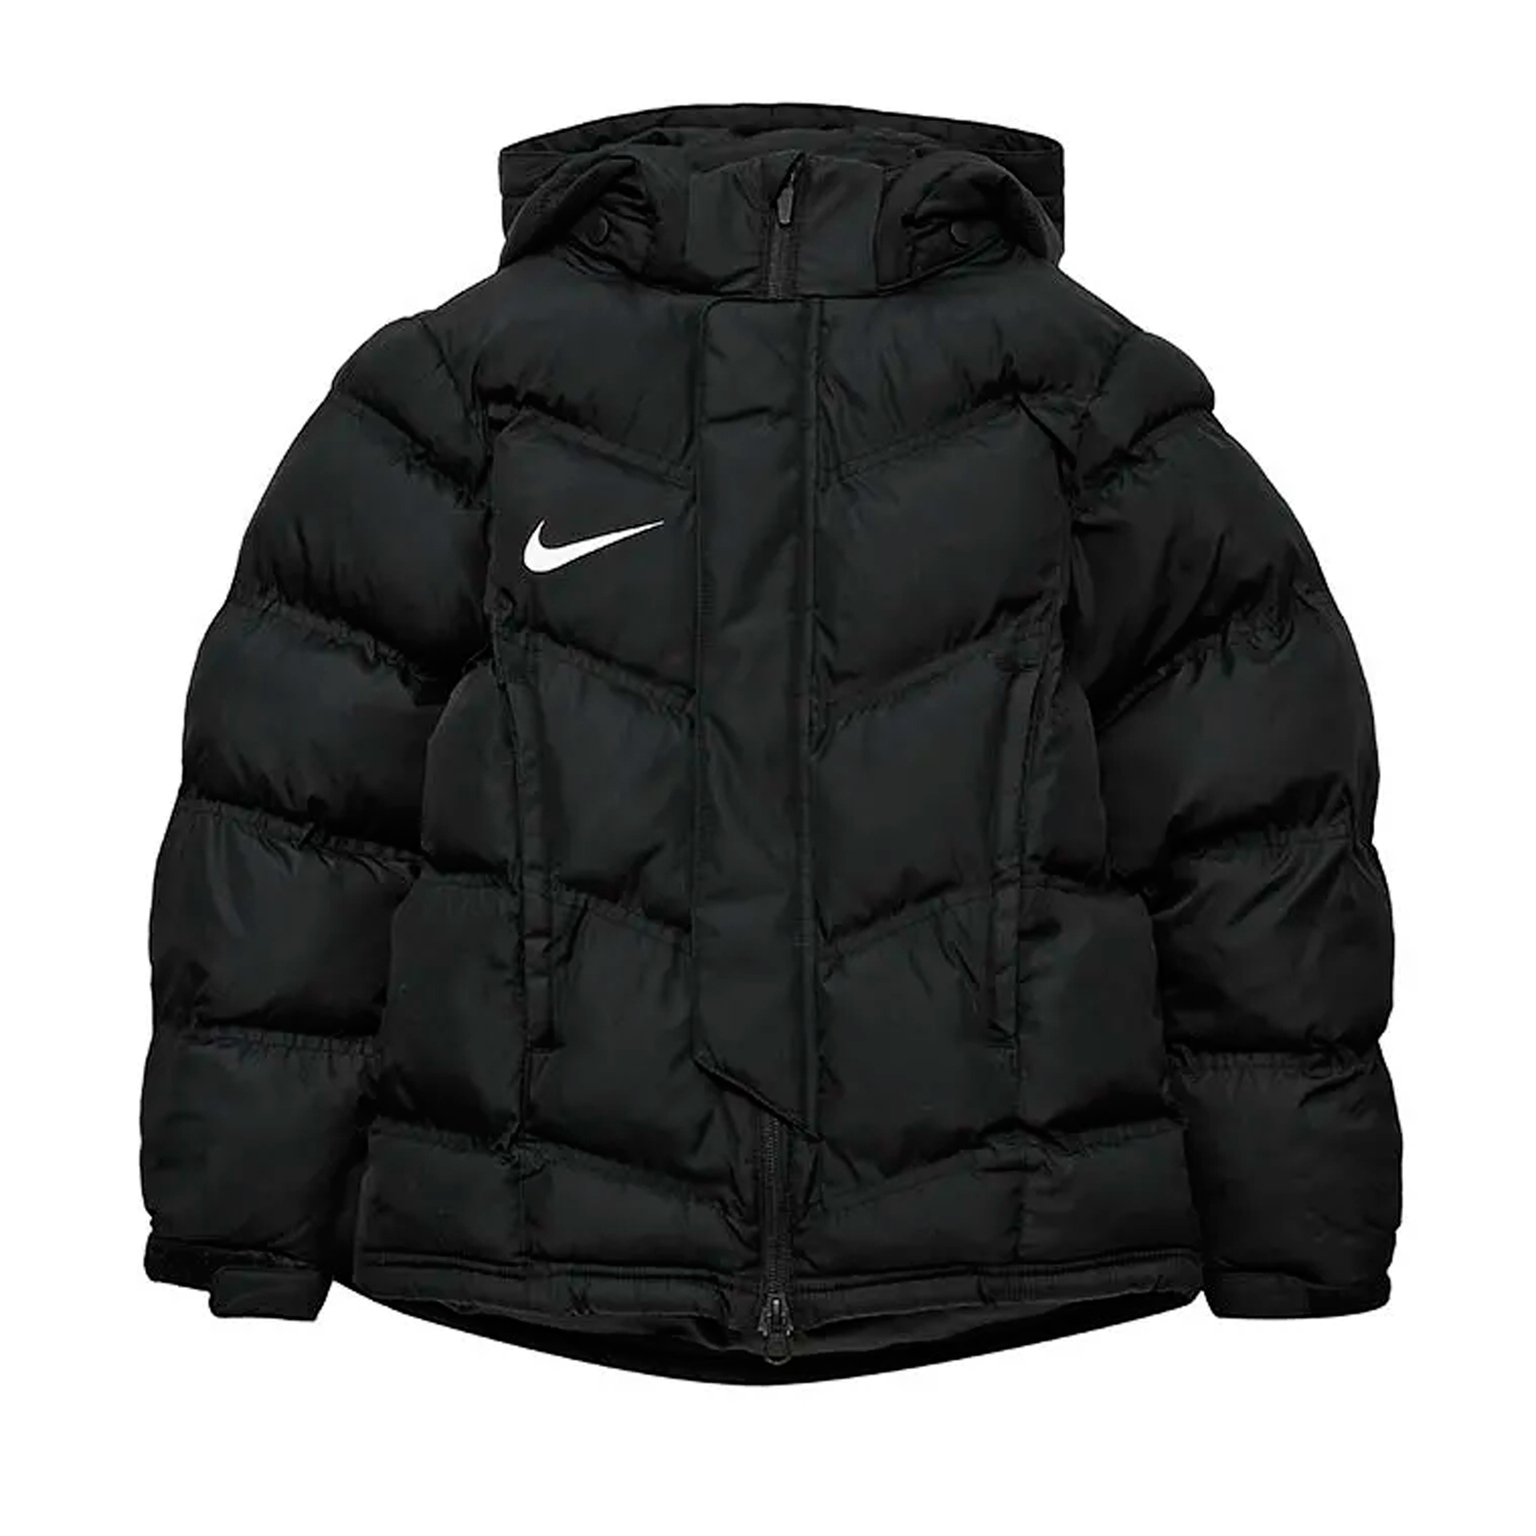 Куртка подростковая Nike Team Winter Jacket 645907-010 куртка nike team winter jkt 645484 010